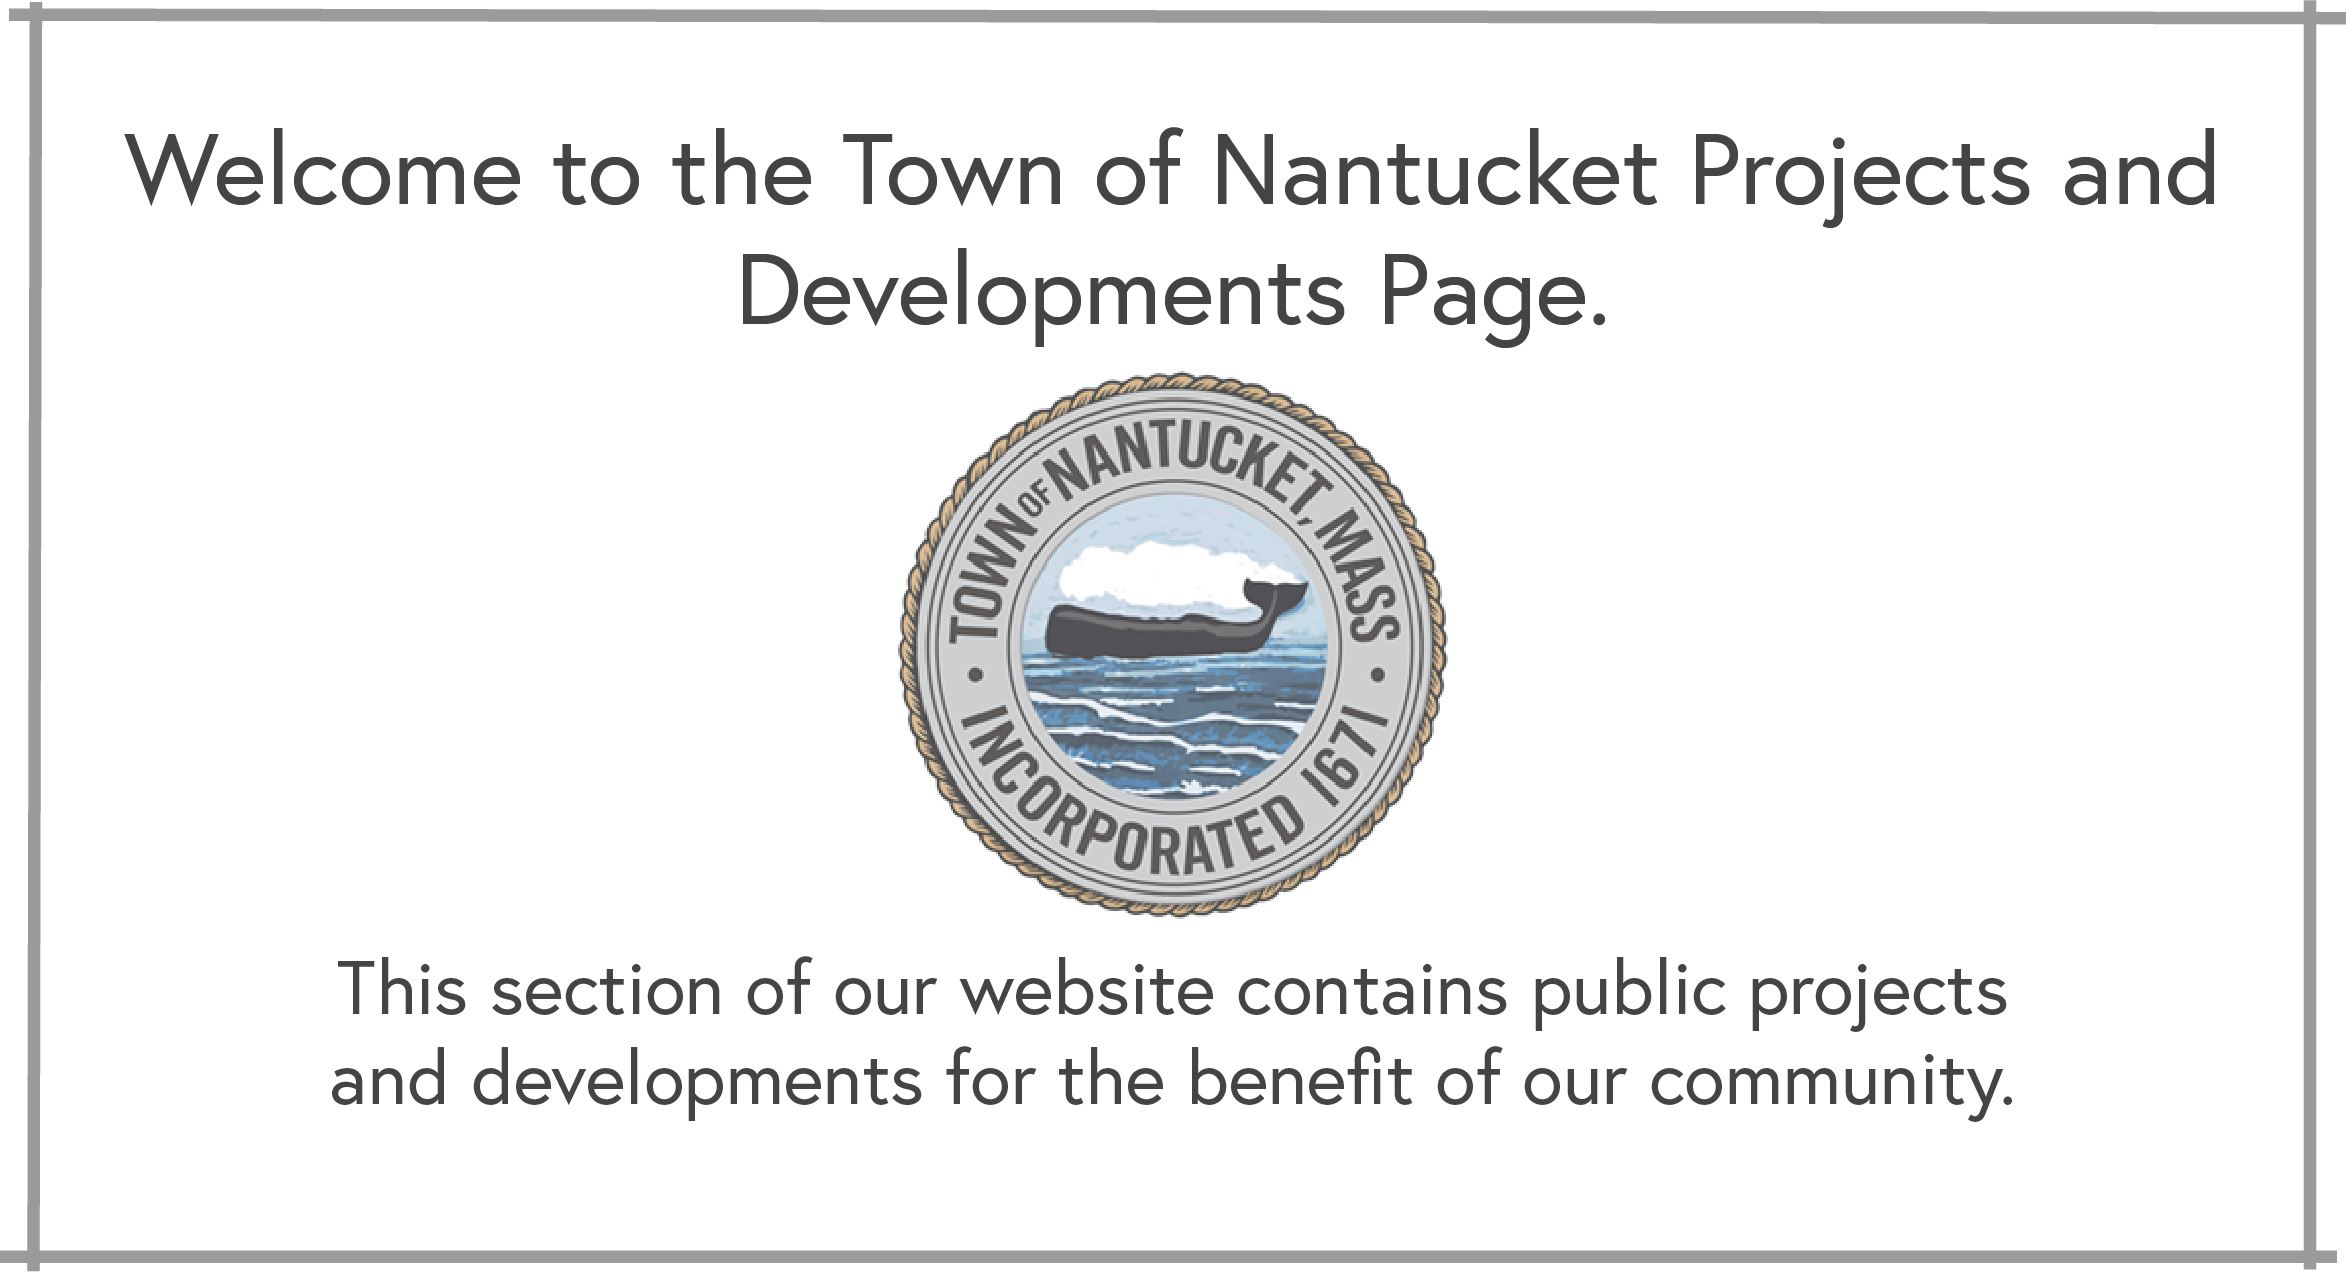 Projects Developments ACK Nantucket